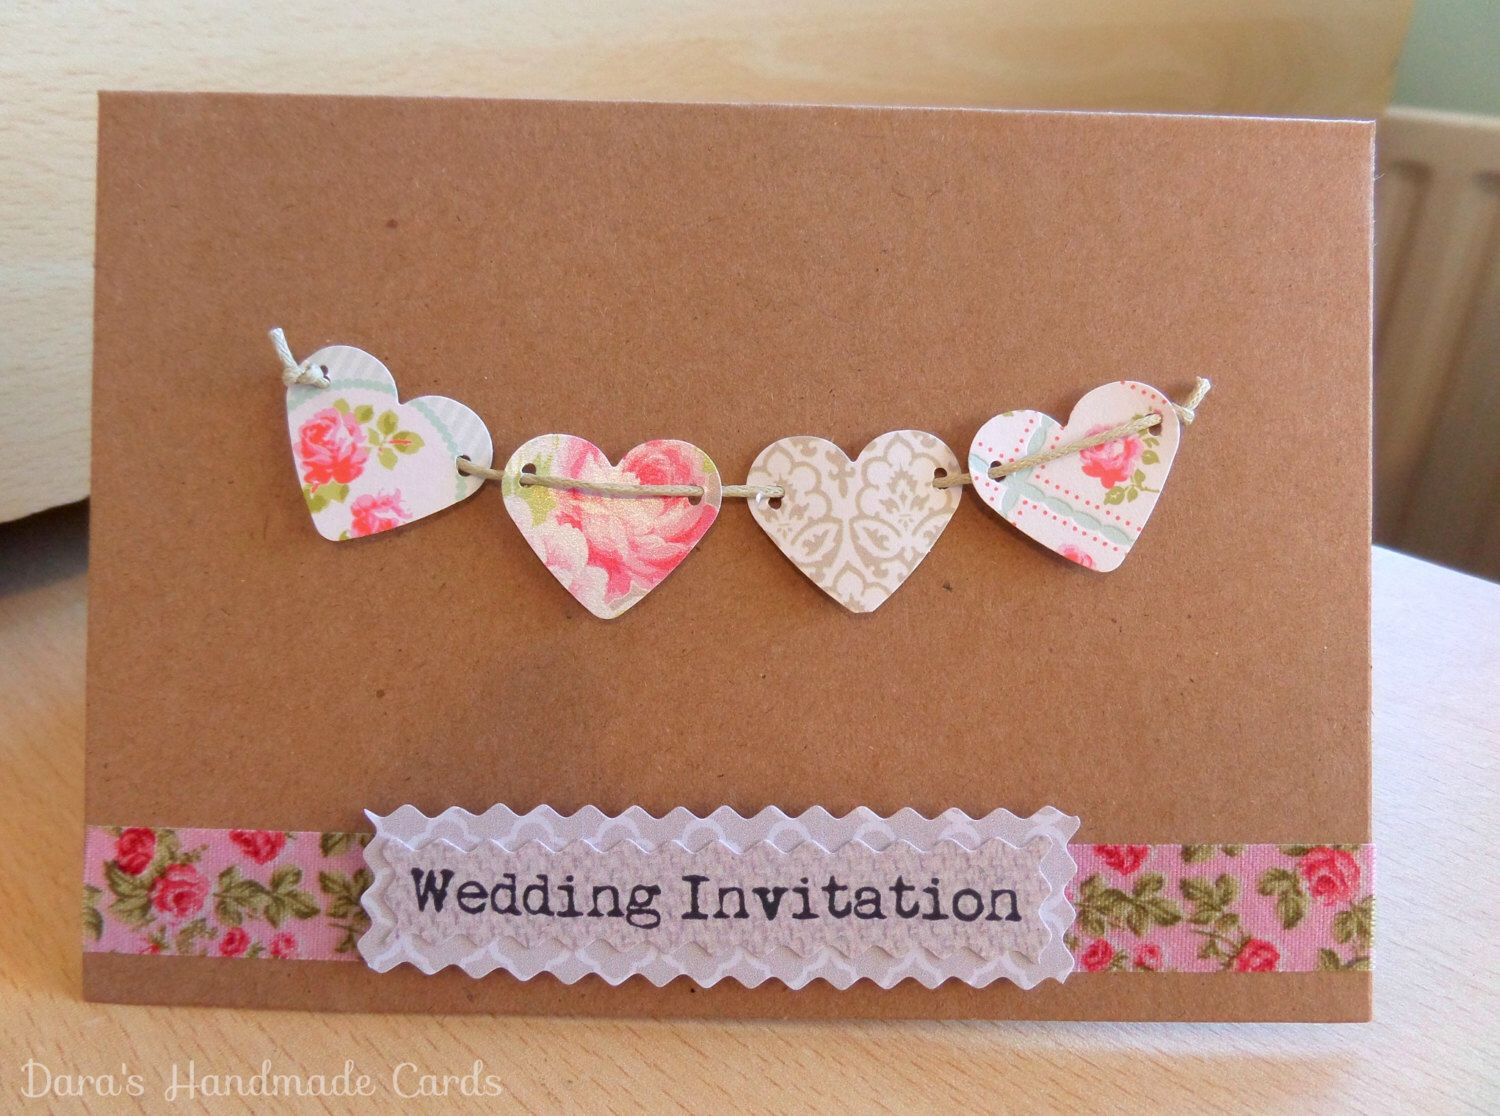 Wedding Invitations Pintrest: Pin By Jade May On Wedding Invitations